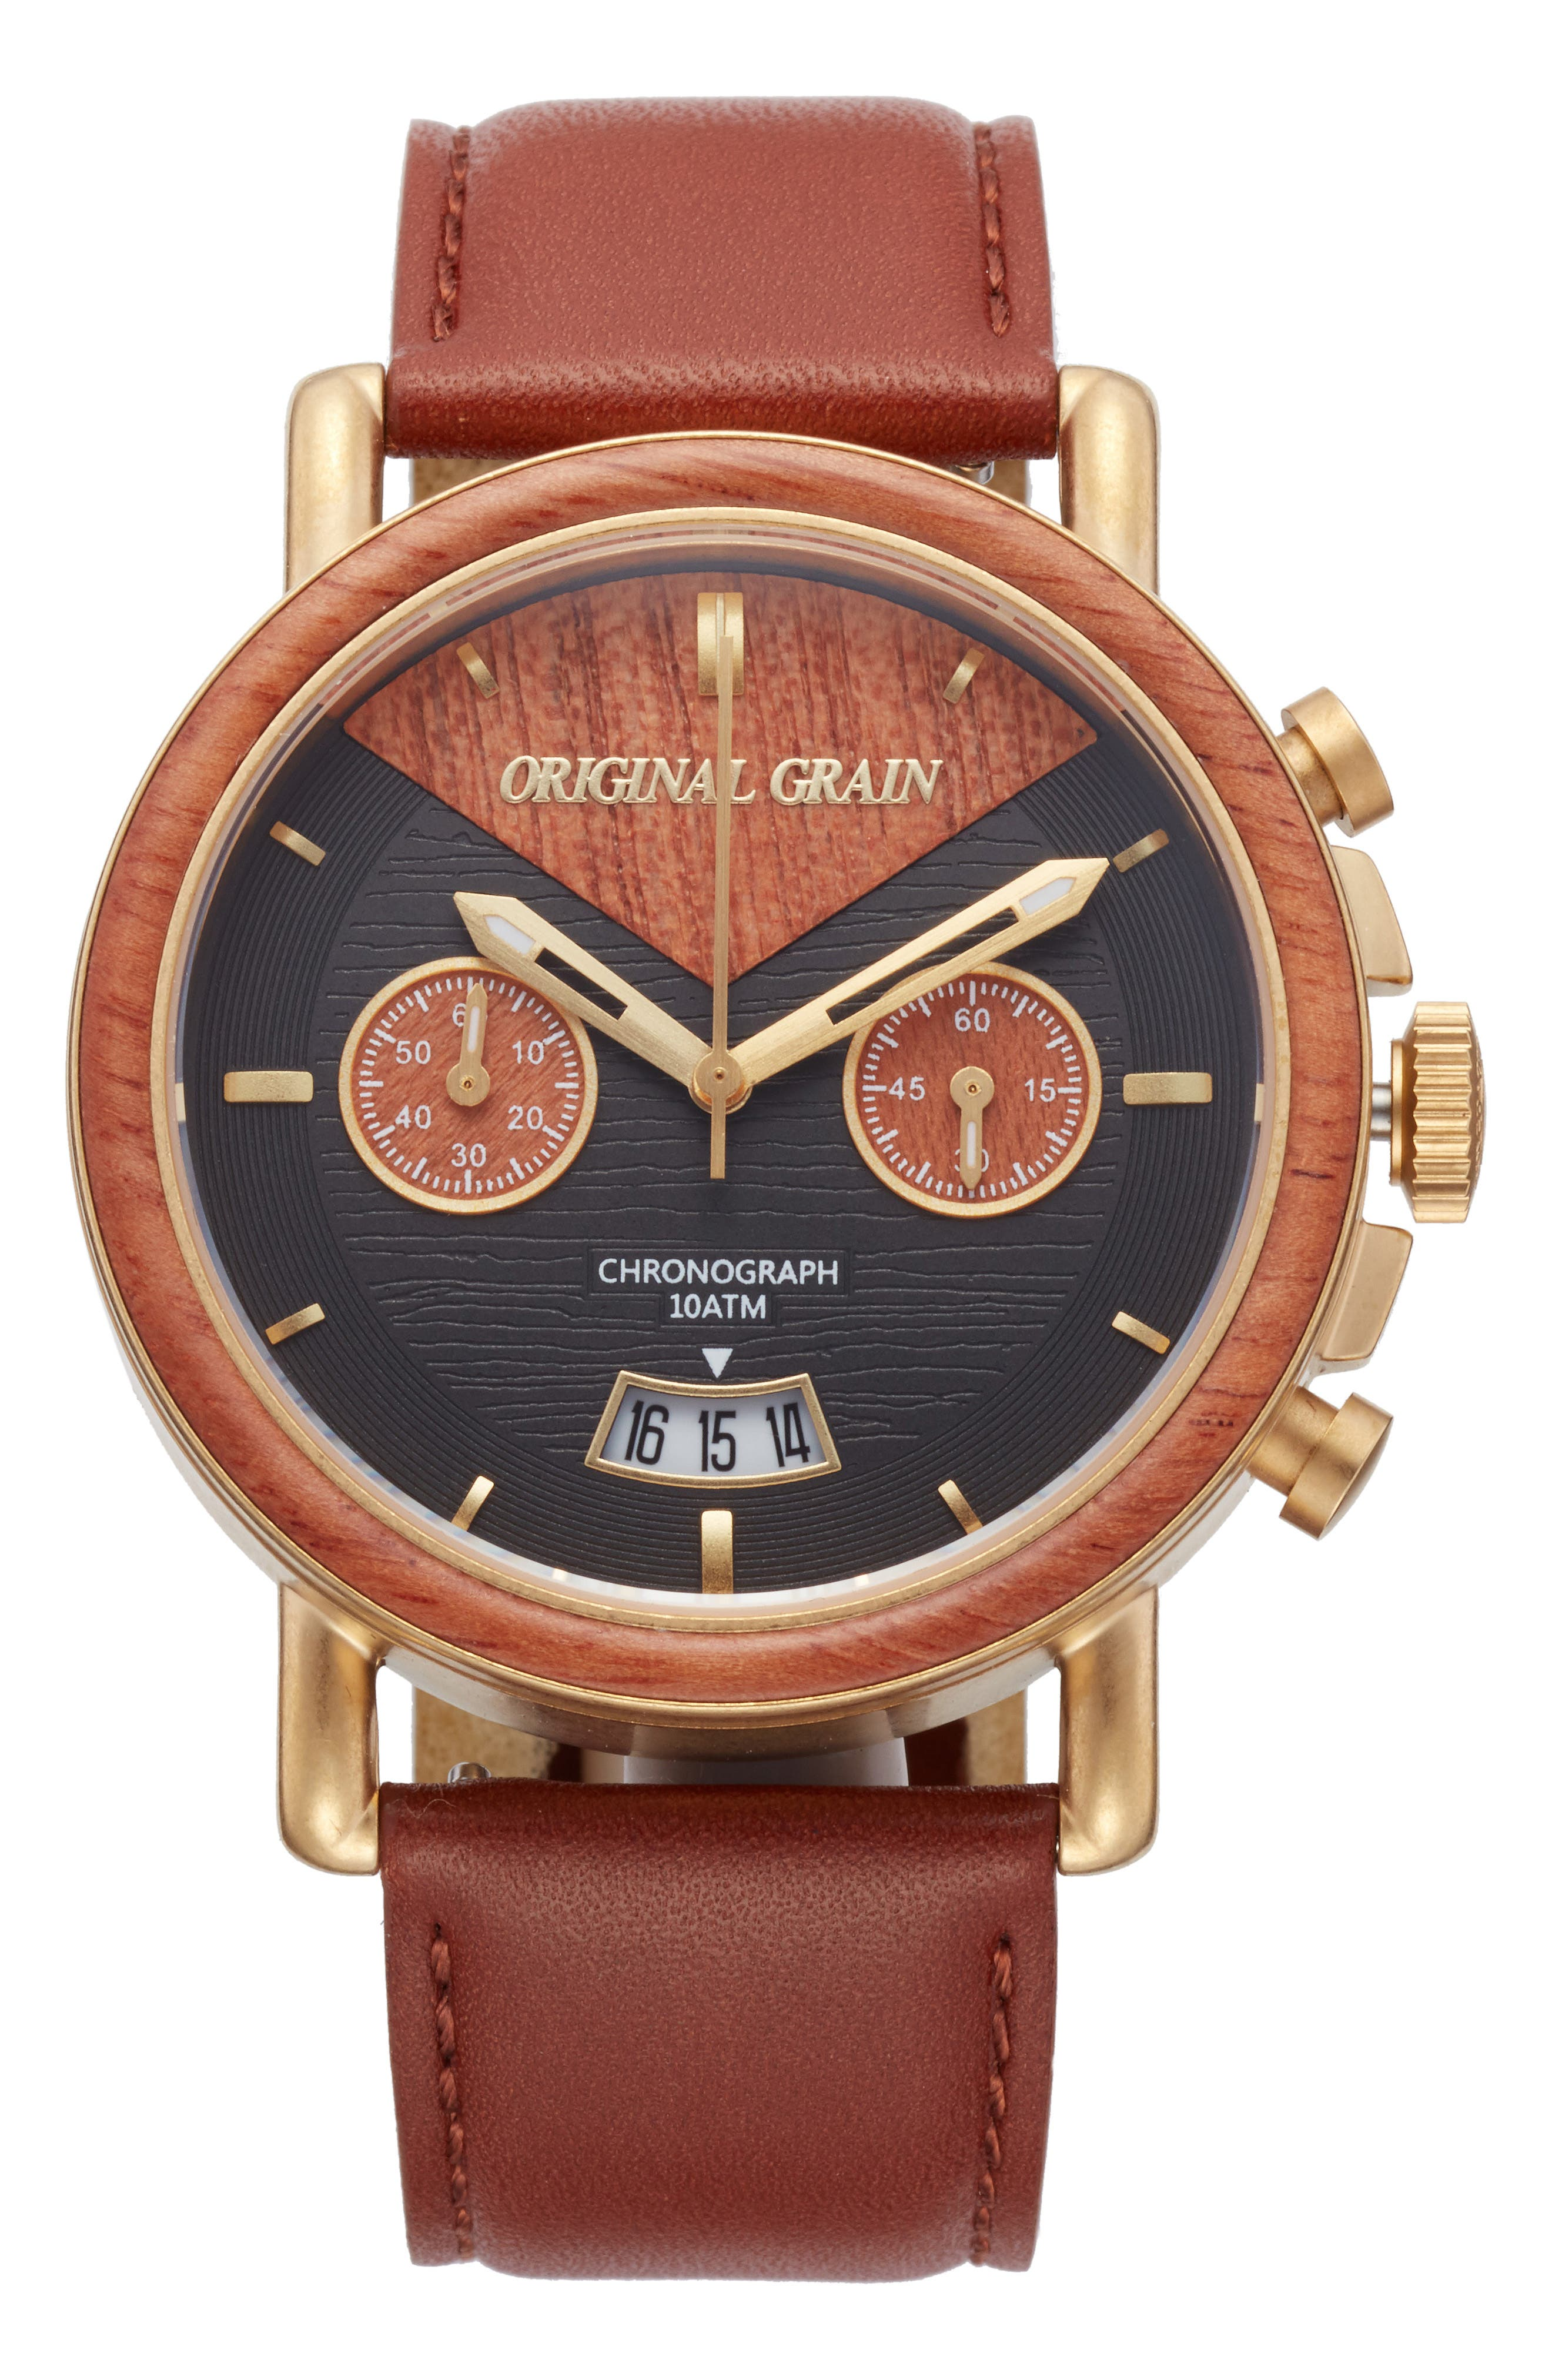 Alternate Image 1 Selected - Original Grain Alterra Chronograph Leather Strap Watch, 44mm